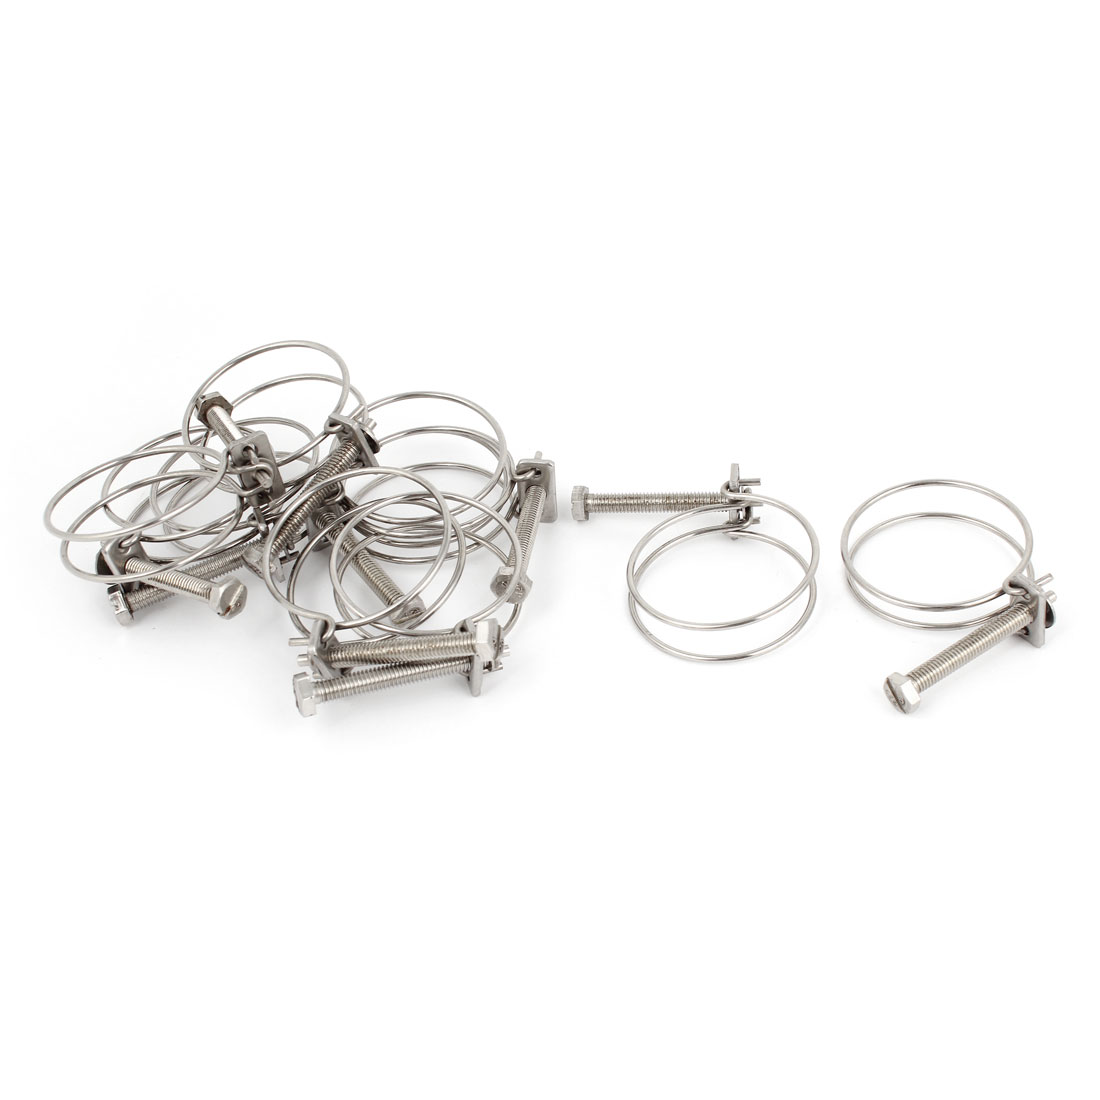 10 Pcs 44mm Diameter Stainless Steel Double Wire Adjustable Hose Clamps